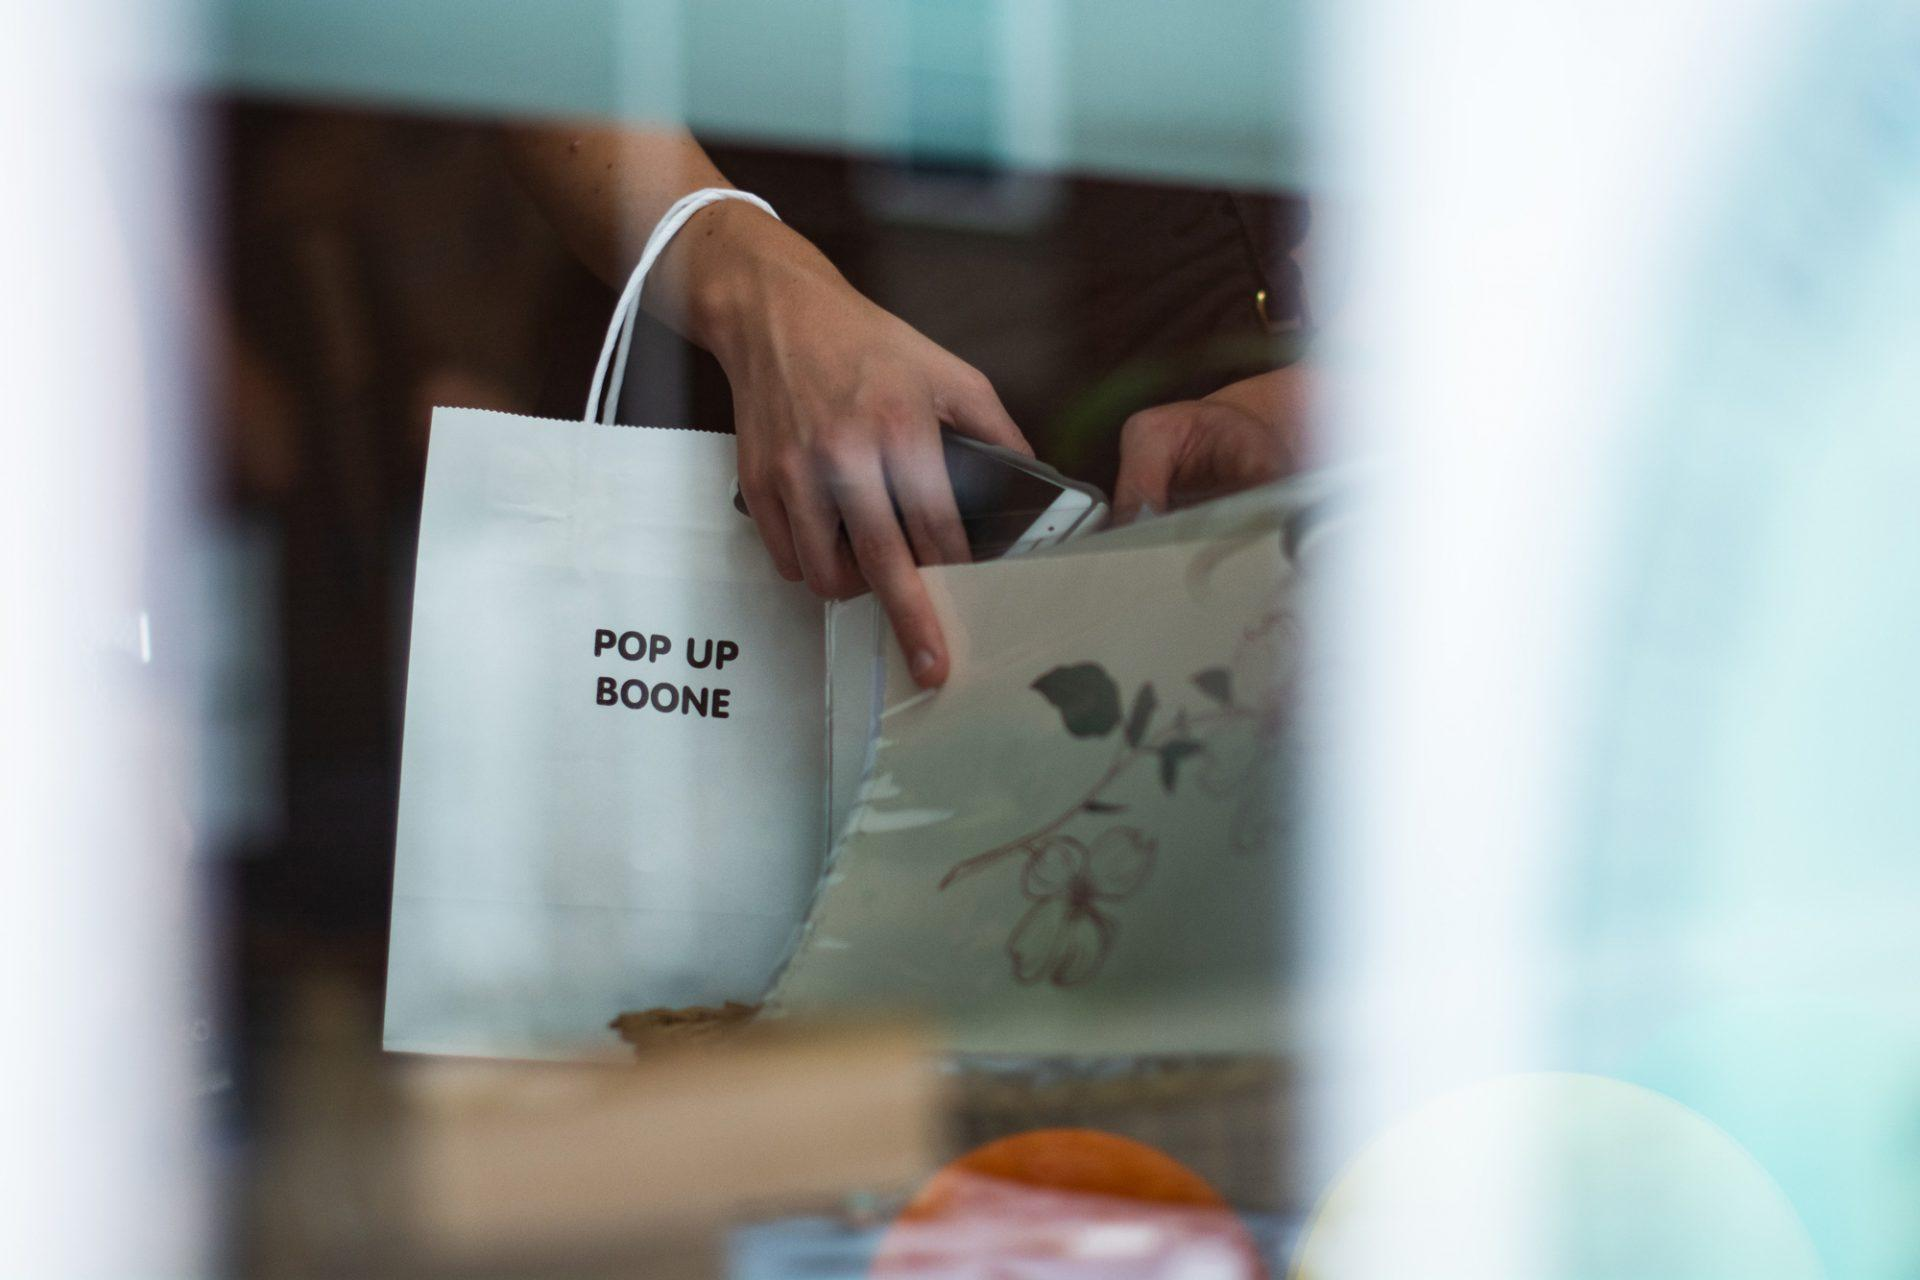 The populairty of Pop Up Boone stems from its supports of local artists as the variety of pieces that the sale offers.